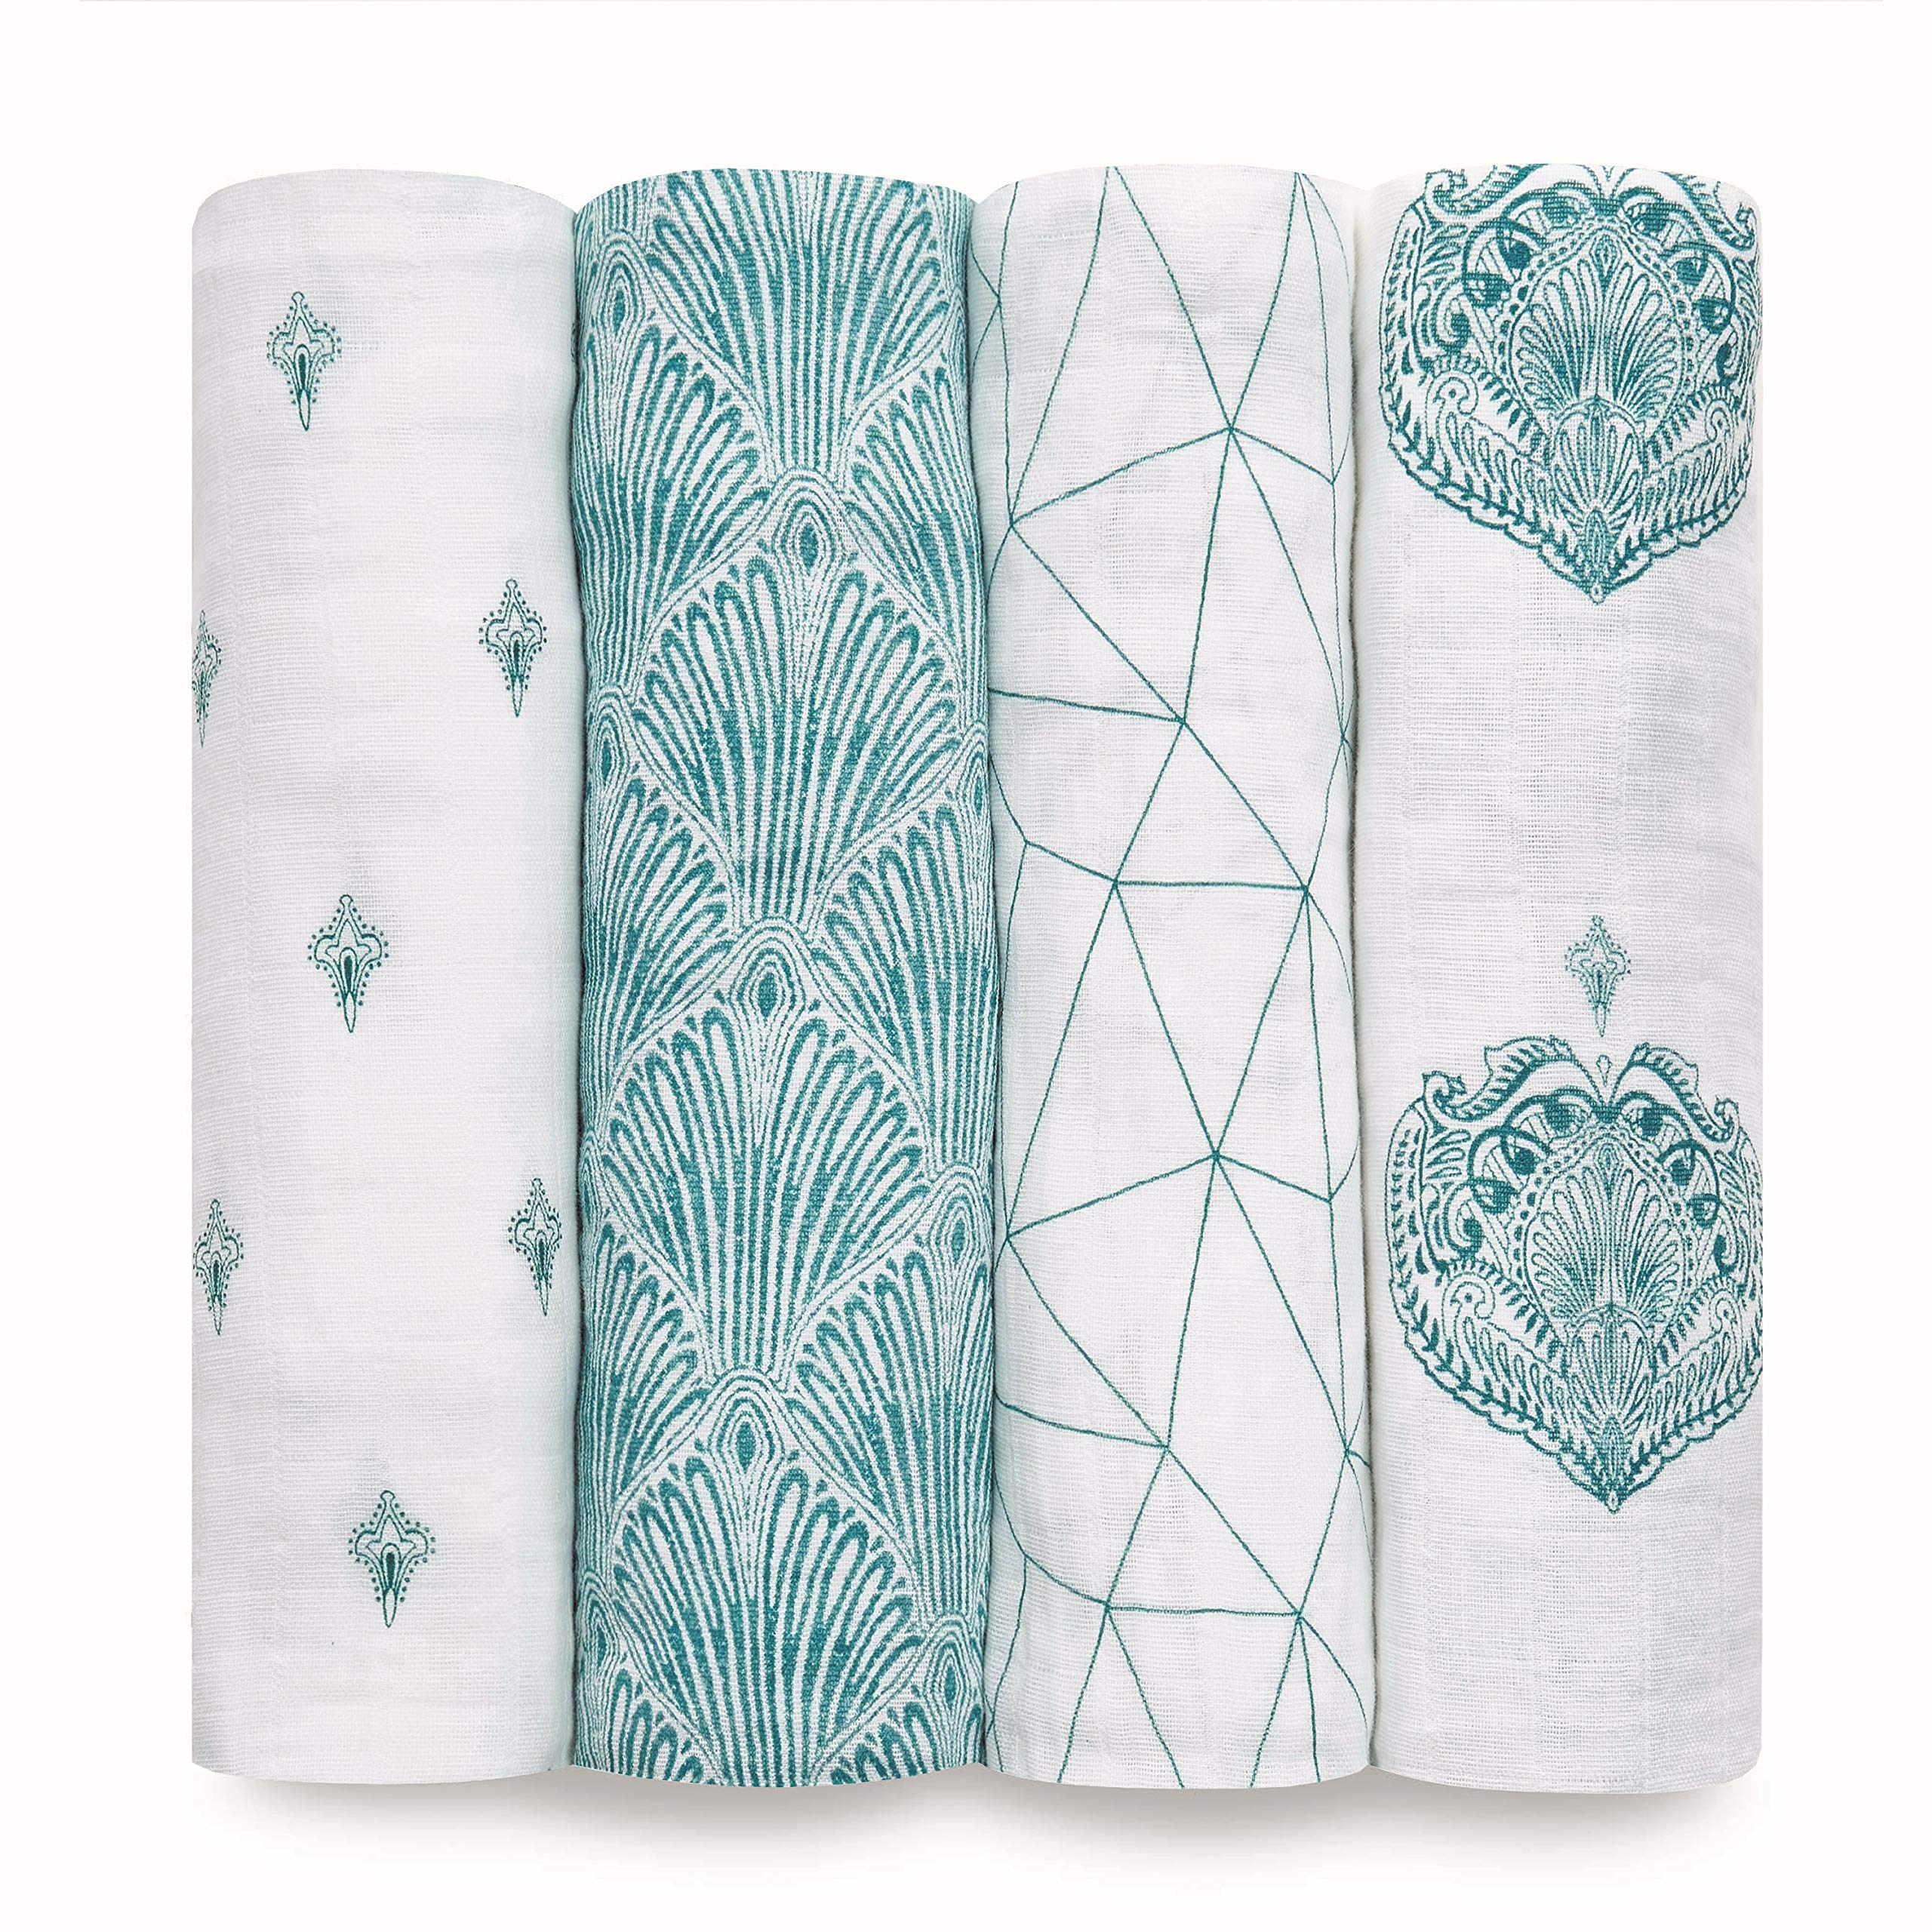 aden + anais Swaddle Blanket, Boutique Muslin Blankets for Girls & Boys, Baby Receiving Swaddles, Ideal Newborn & Infant Swaddling Set, Perfect Shower Gifts, 4 Pack, Paisley